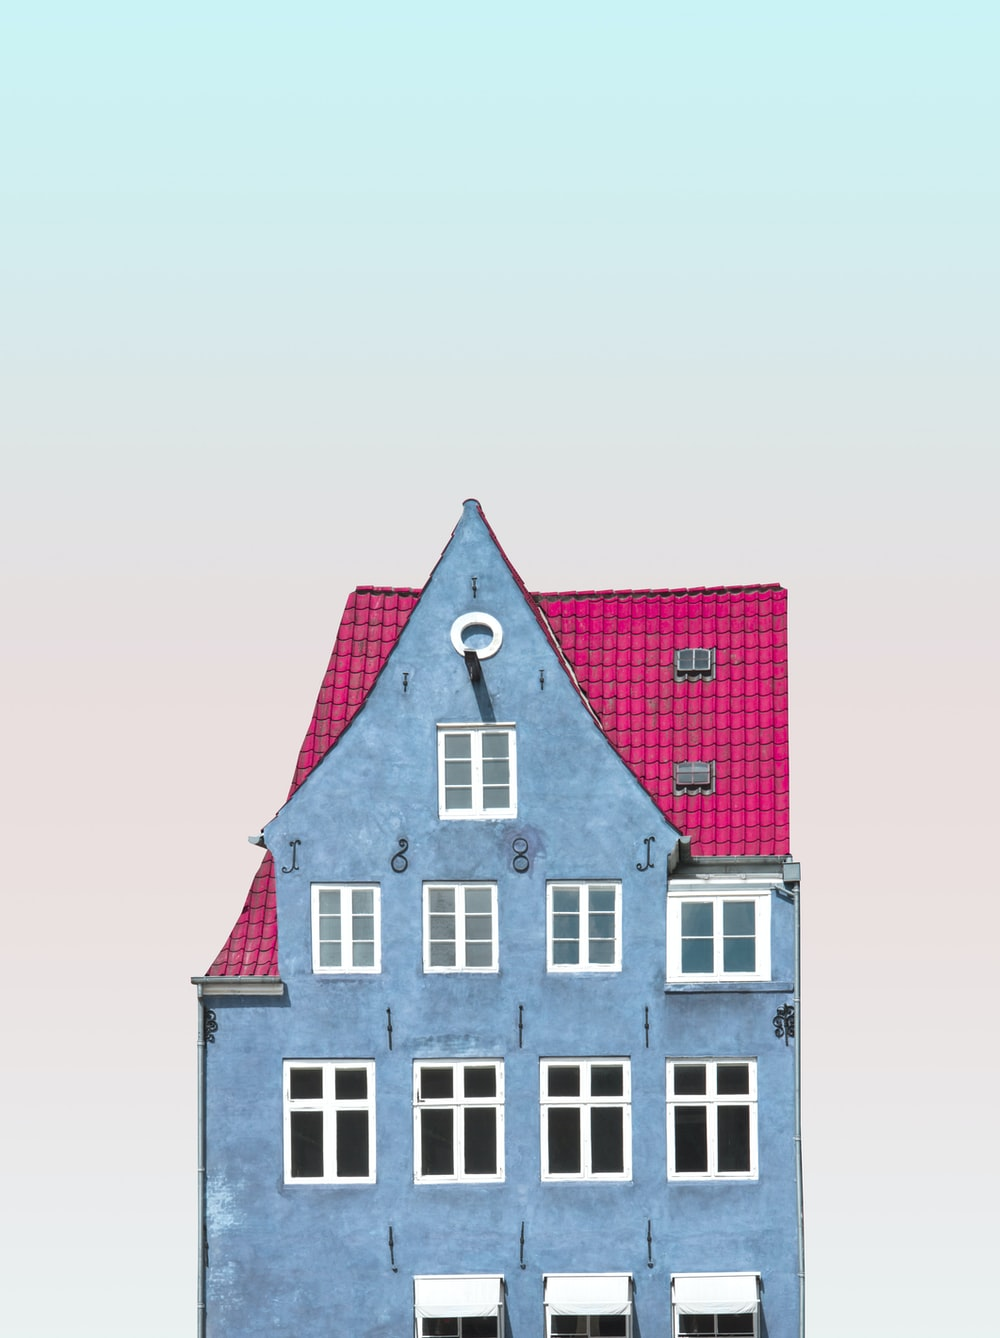 blue and pink 4-storey house illustration